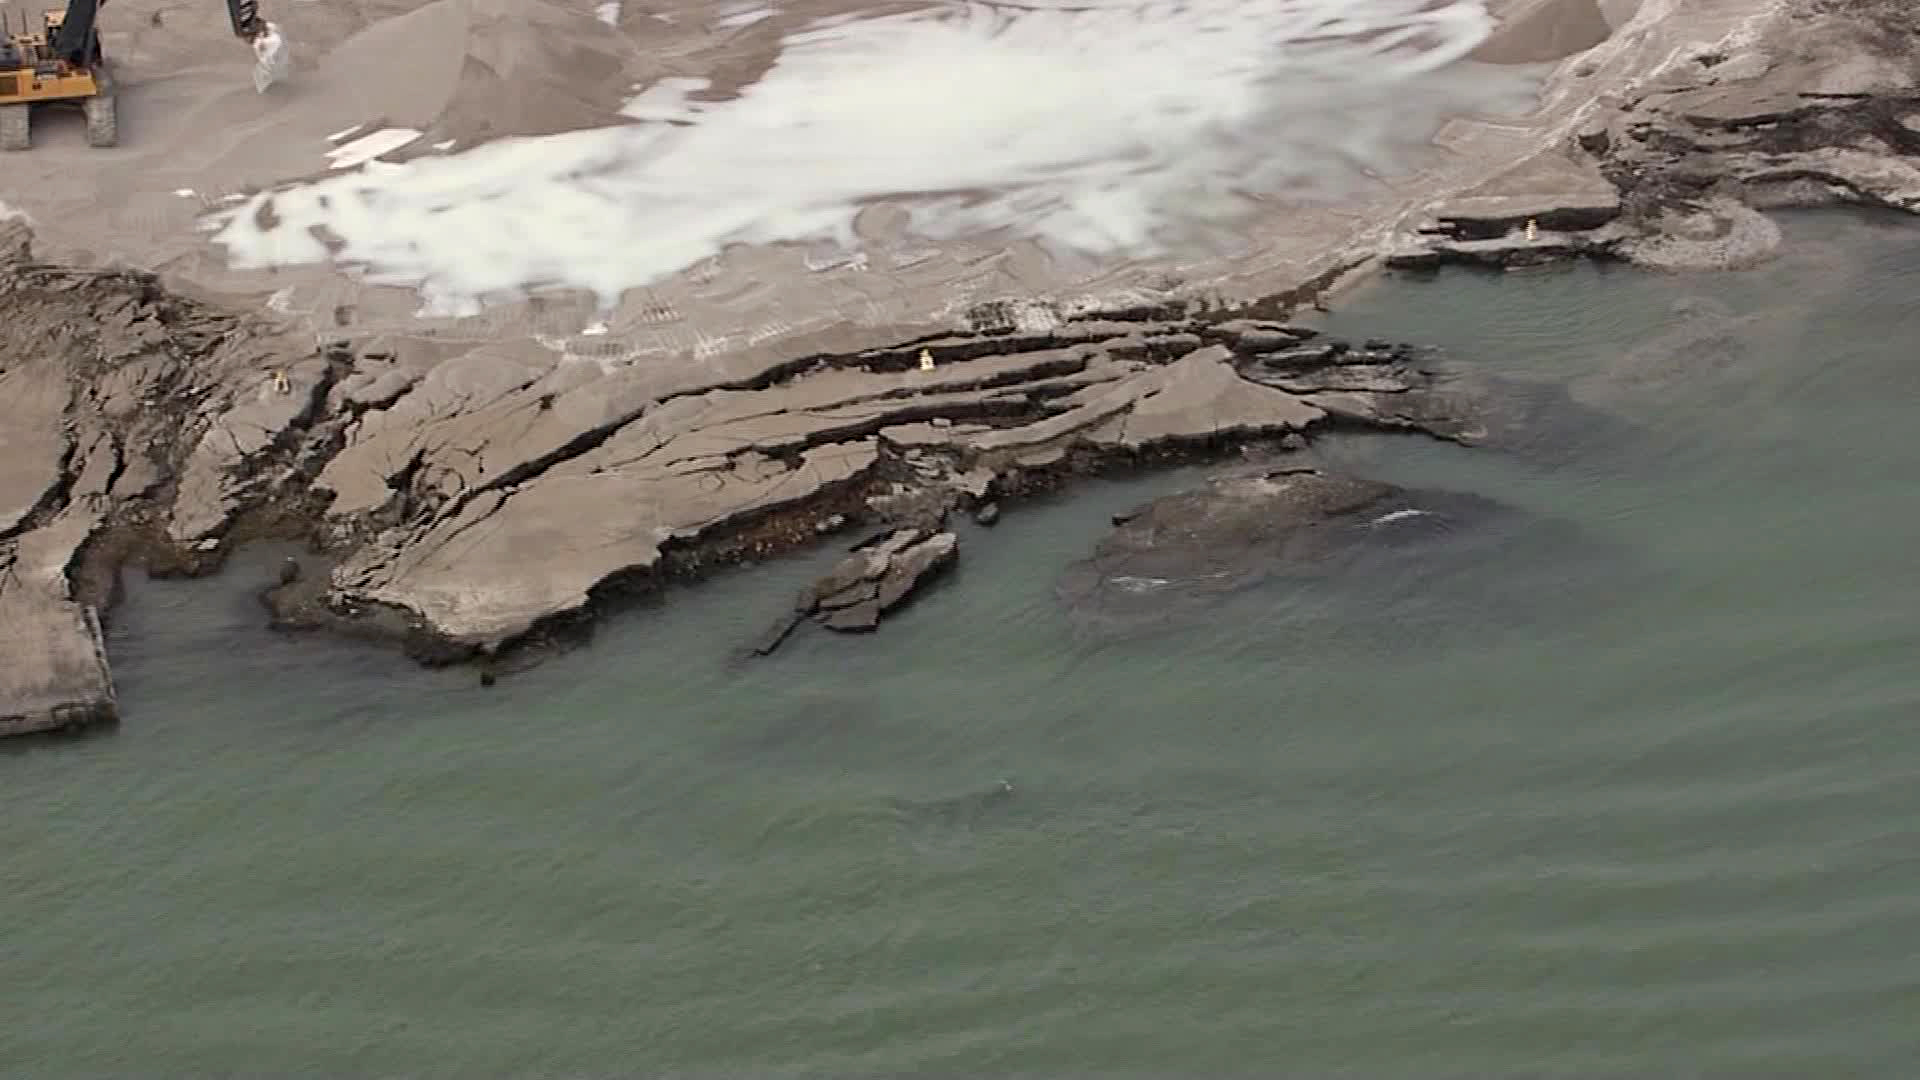 Former radioactive site collapses into Detroit River, raising drinking water safety concerns